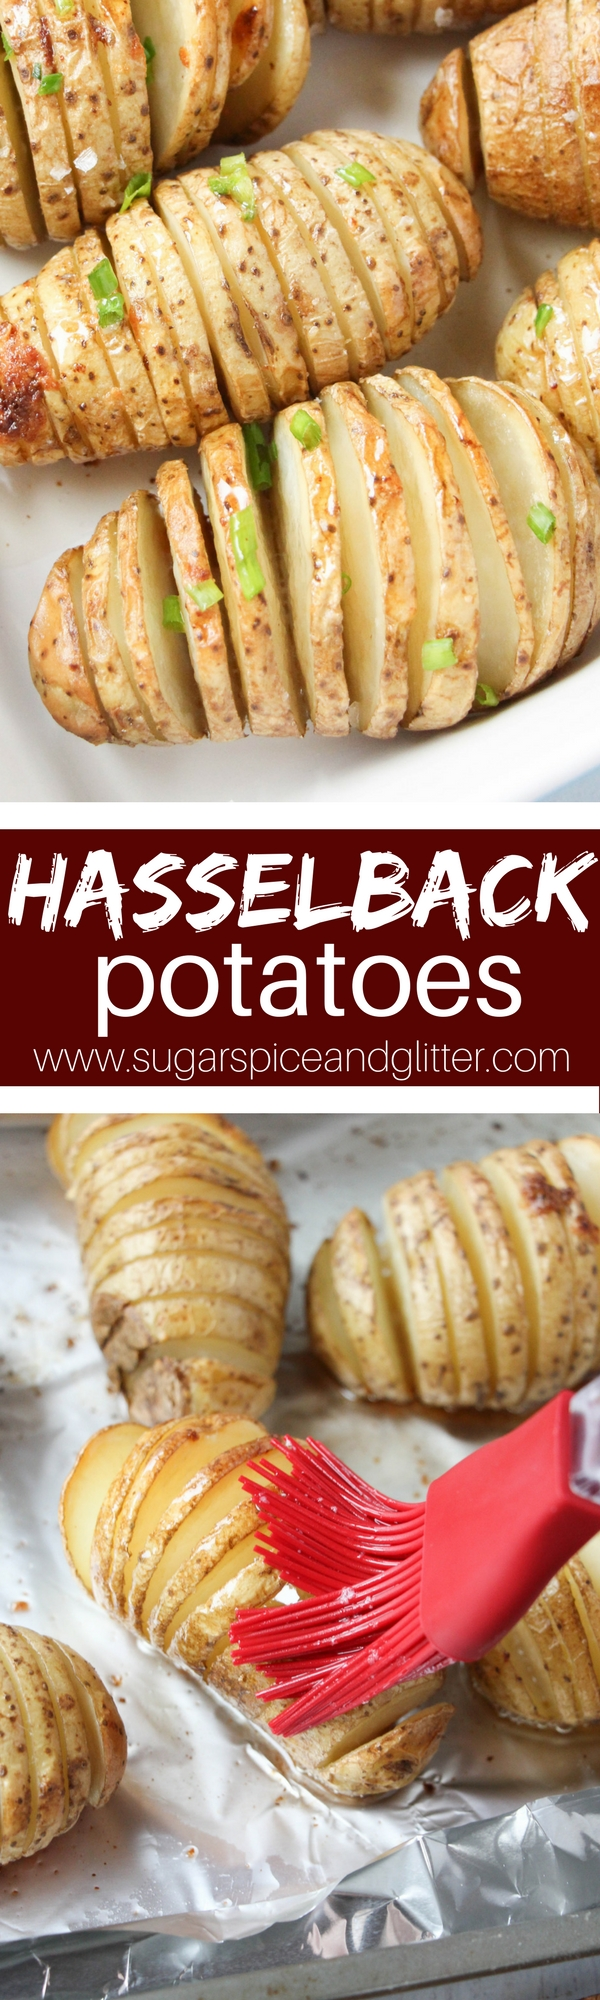 Easy baked Hasselback Potatoes are crispy yet just a bit tender with a buttery taste that is the perfect hybrid between a potato chip and mashed potato, if you've never had Hasselback Potatoes, you are majorly missing out!